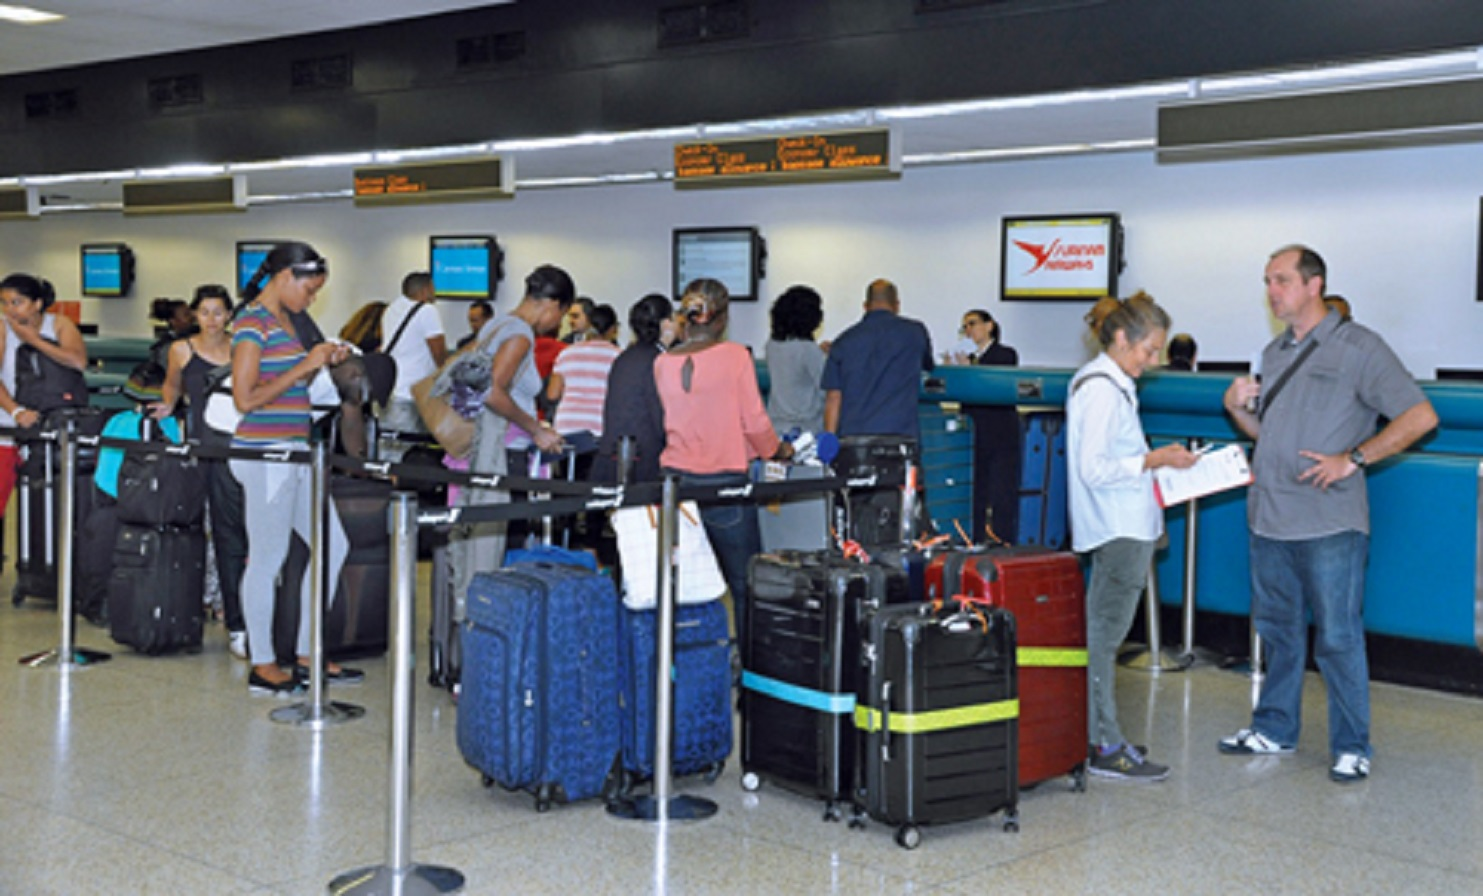 50% of Miami International Airport Passengers Likely To Return in 2020